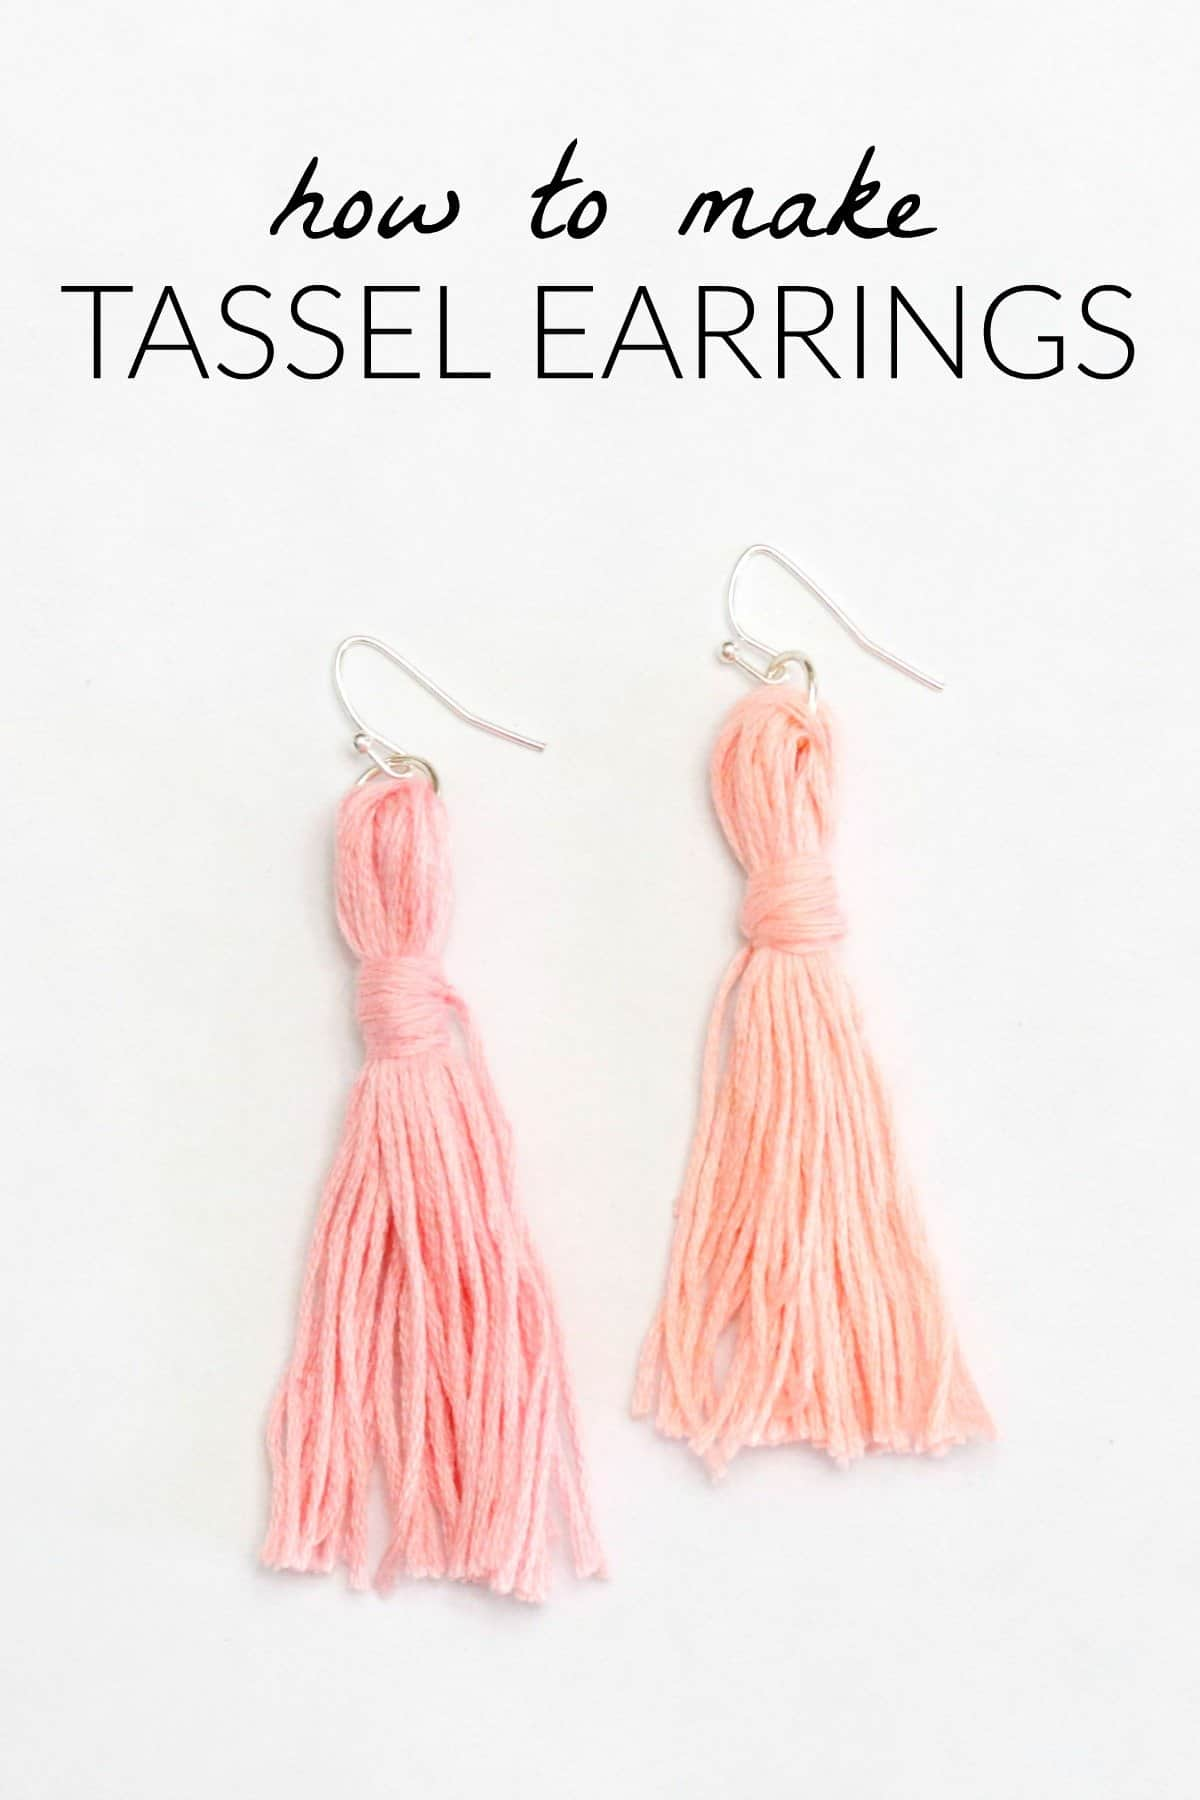 DIY tassel earrings, make tassel earrings